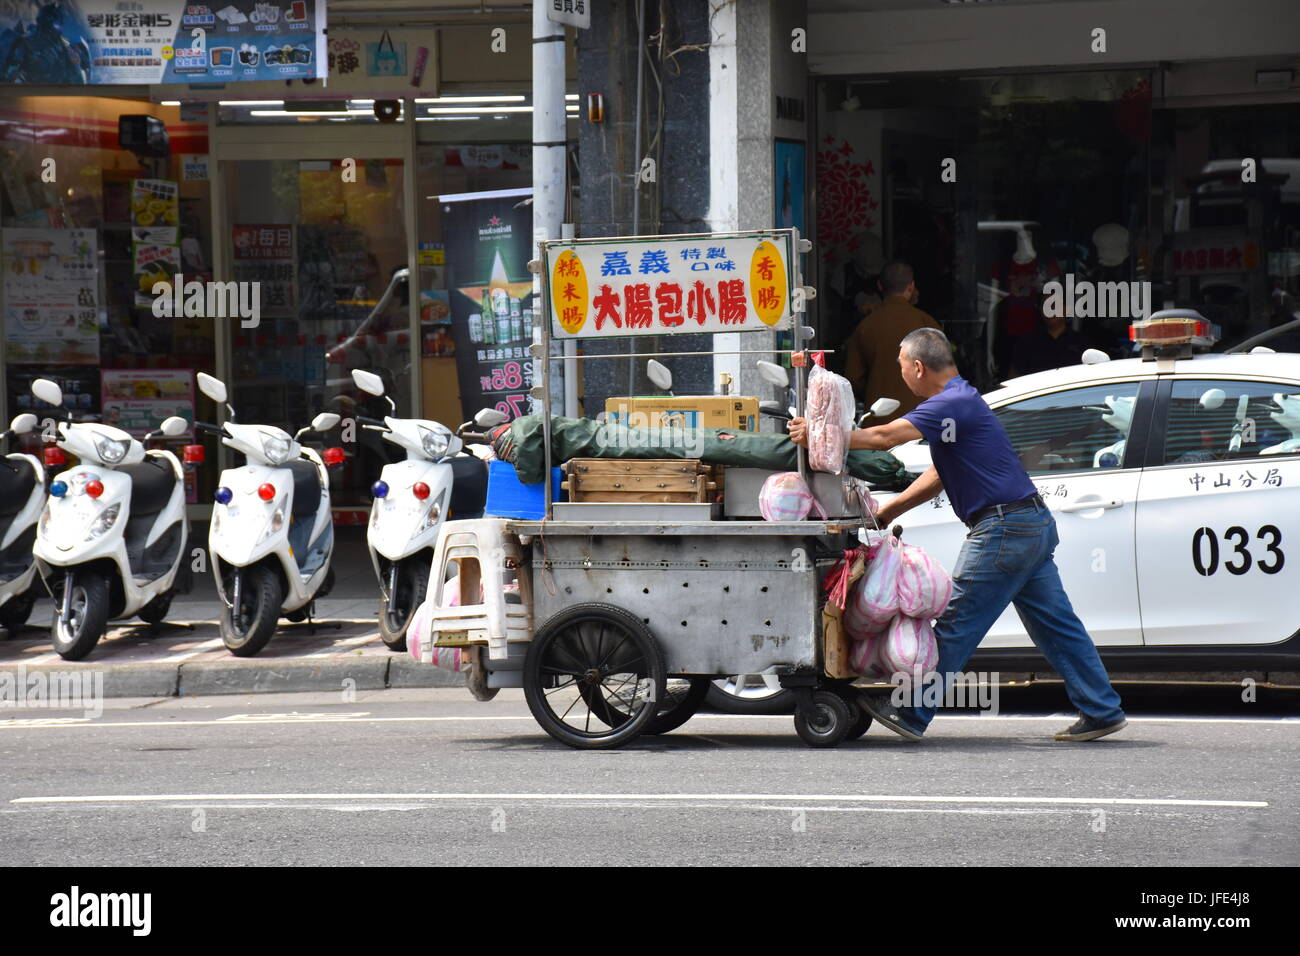 A food stand person pushes his cart past a police station near Mackay Hospital. Taipei, Taiwan. Stock Photo